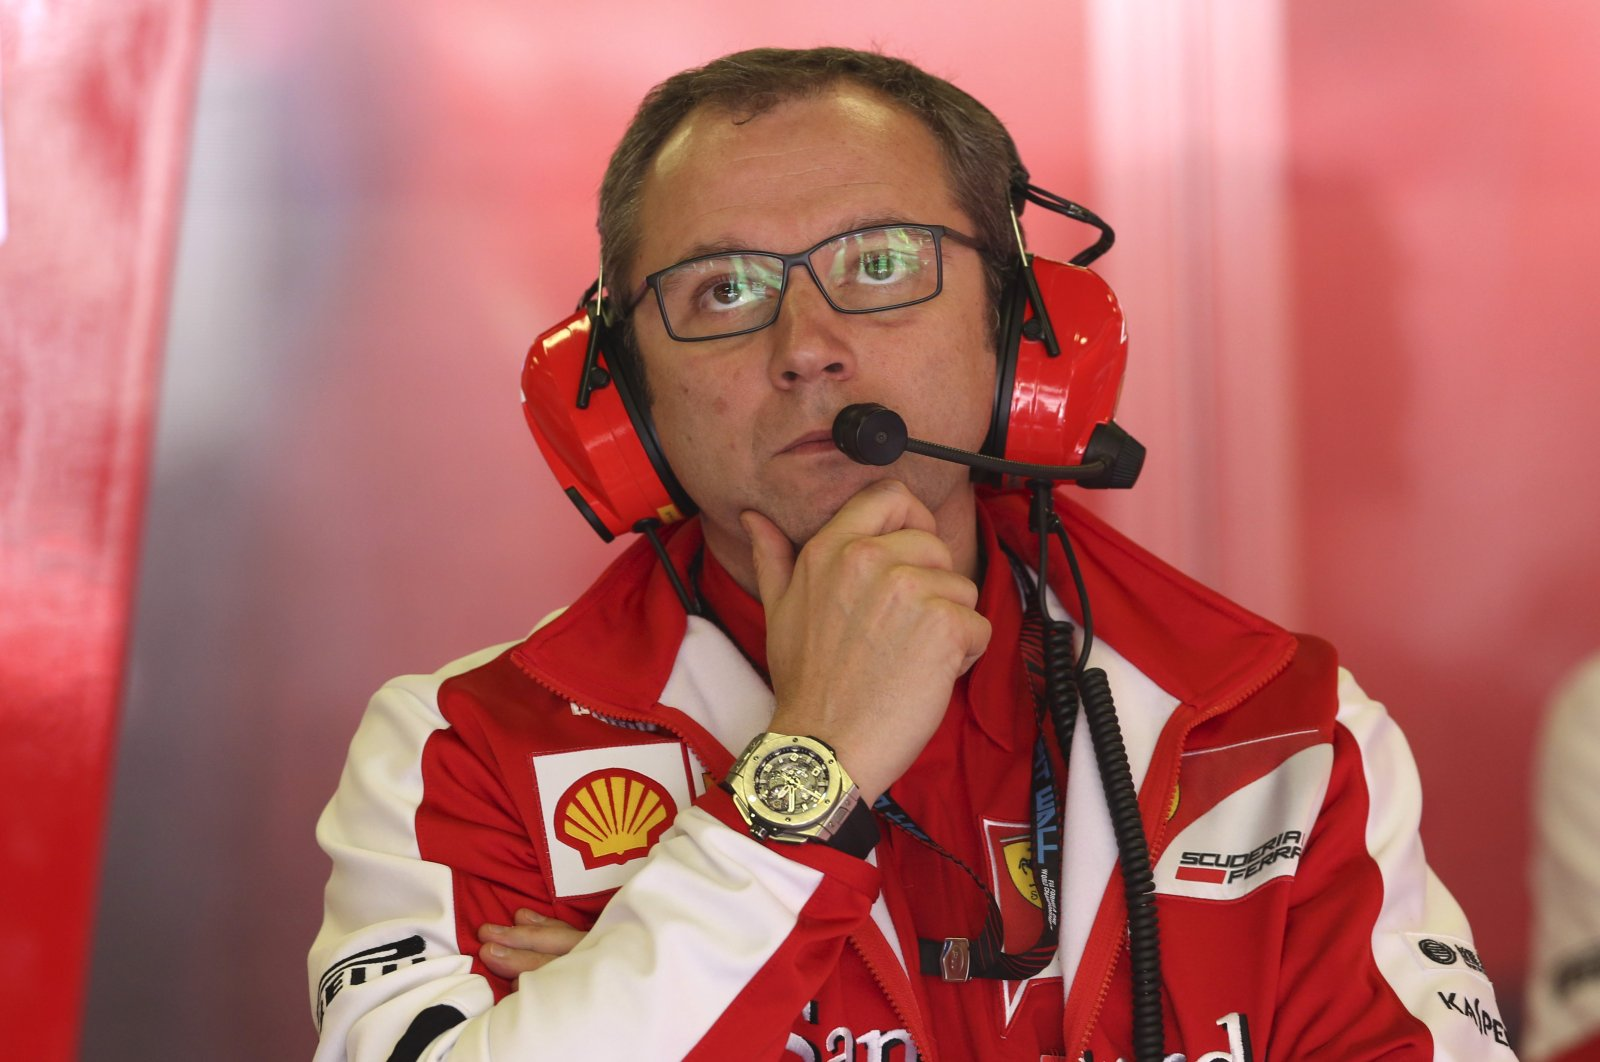 Stefano Domenicali watches a Formula 1 race in Montmelo, Spain, May 10, 2013. (AP Photo)